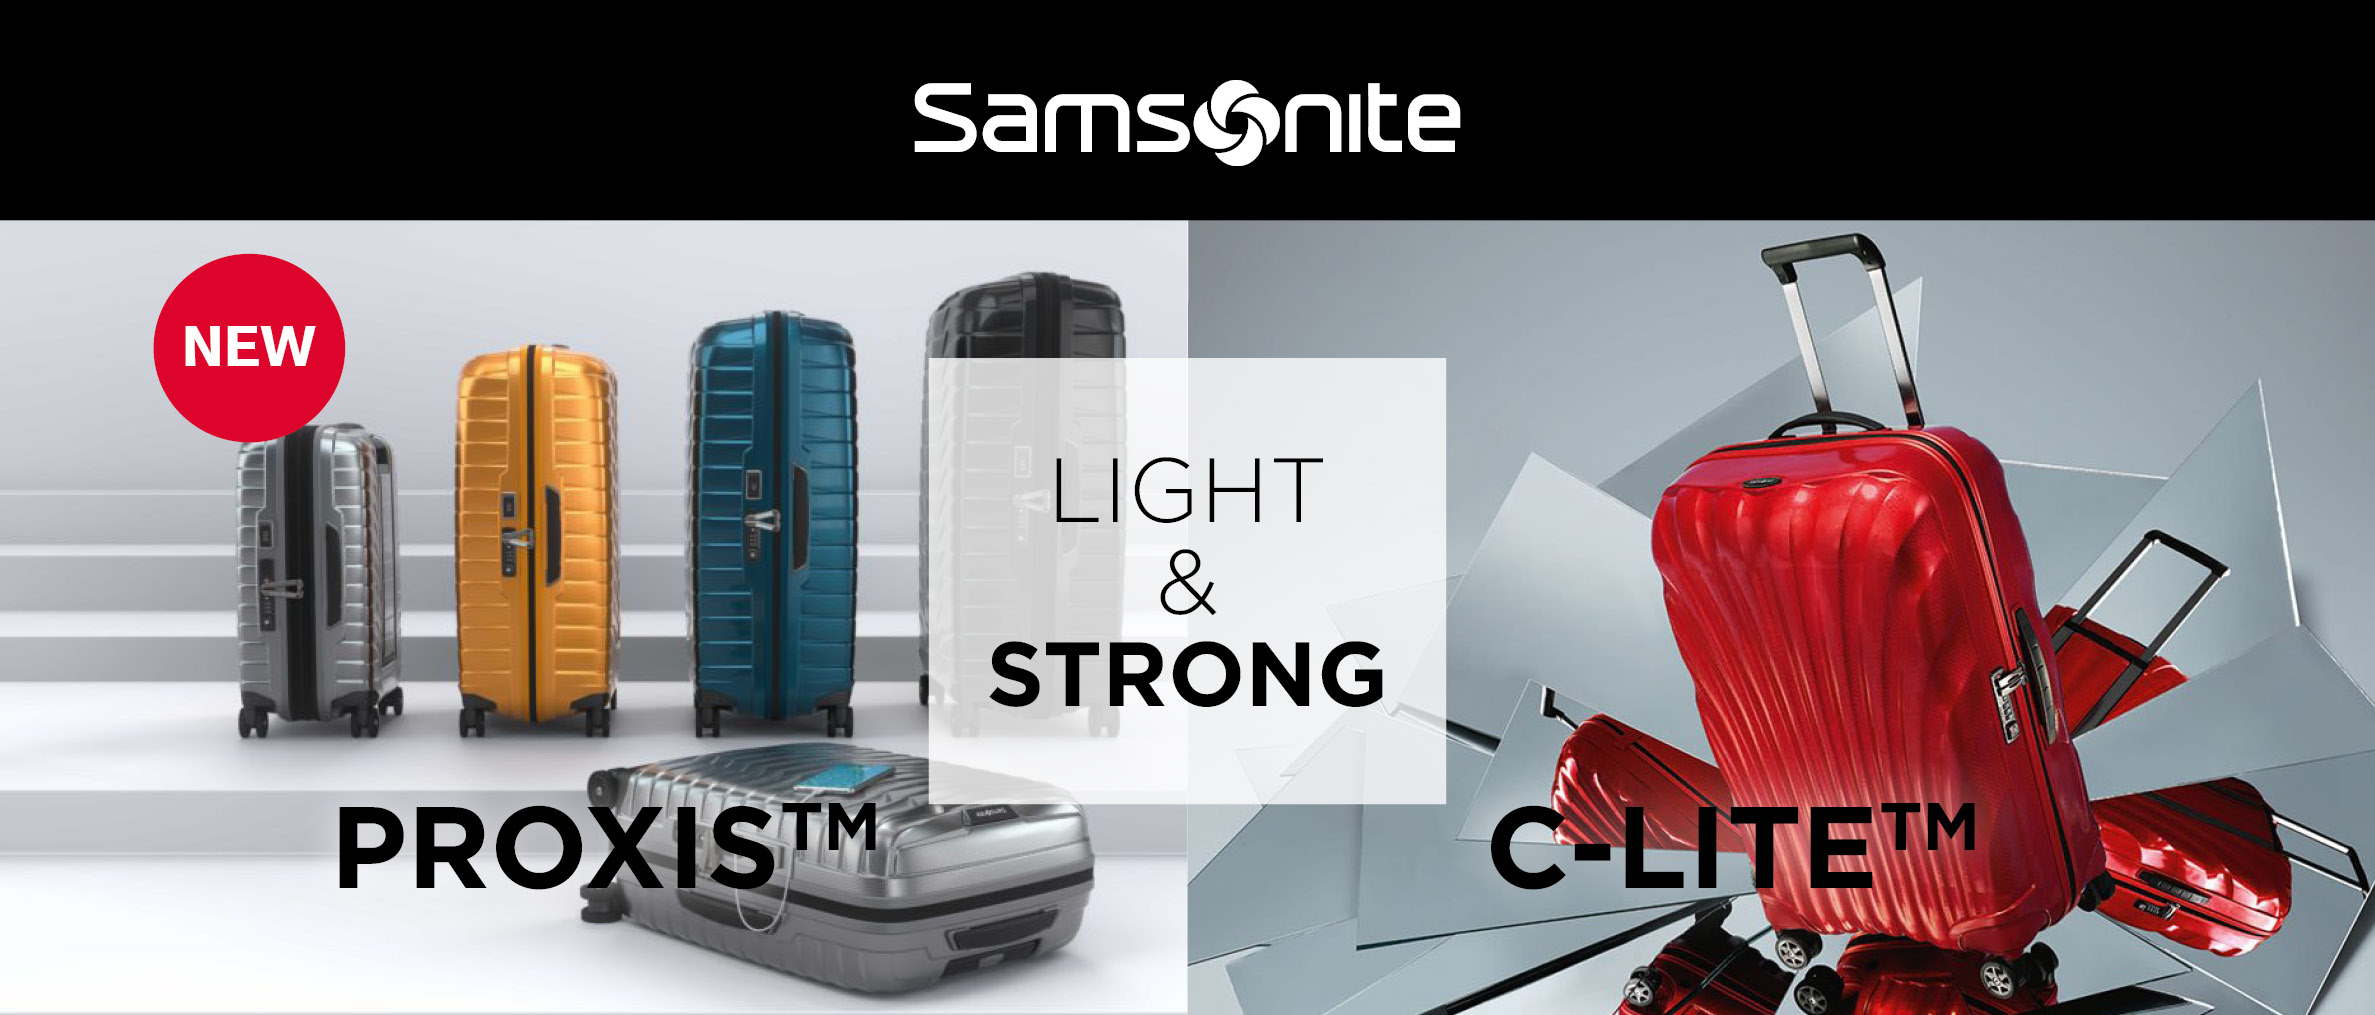 Samsonite Light & Strong